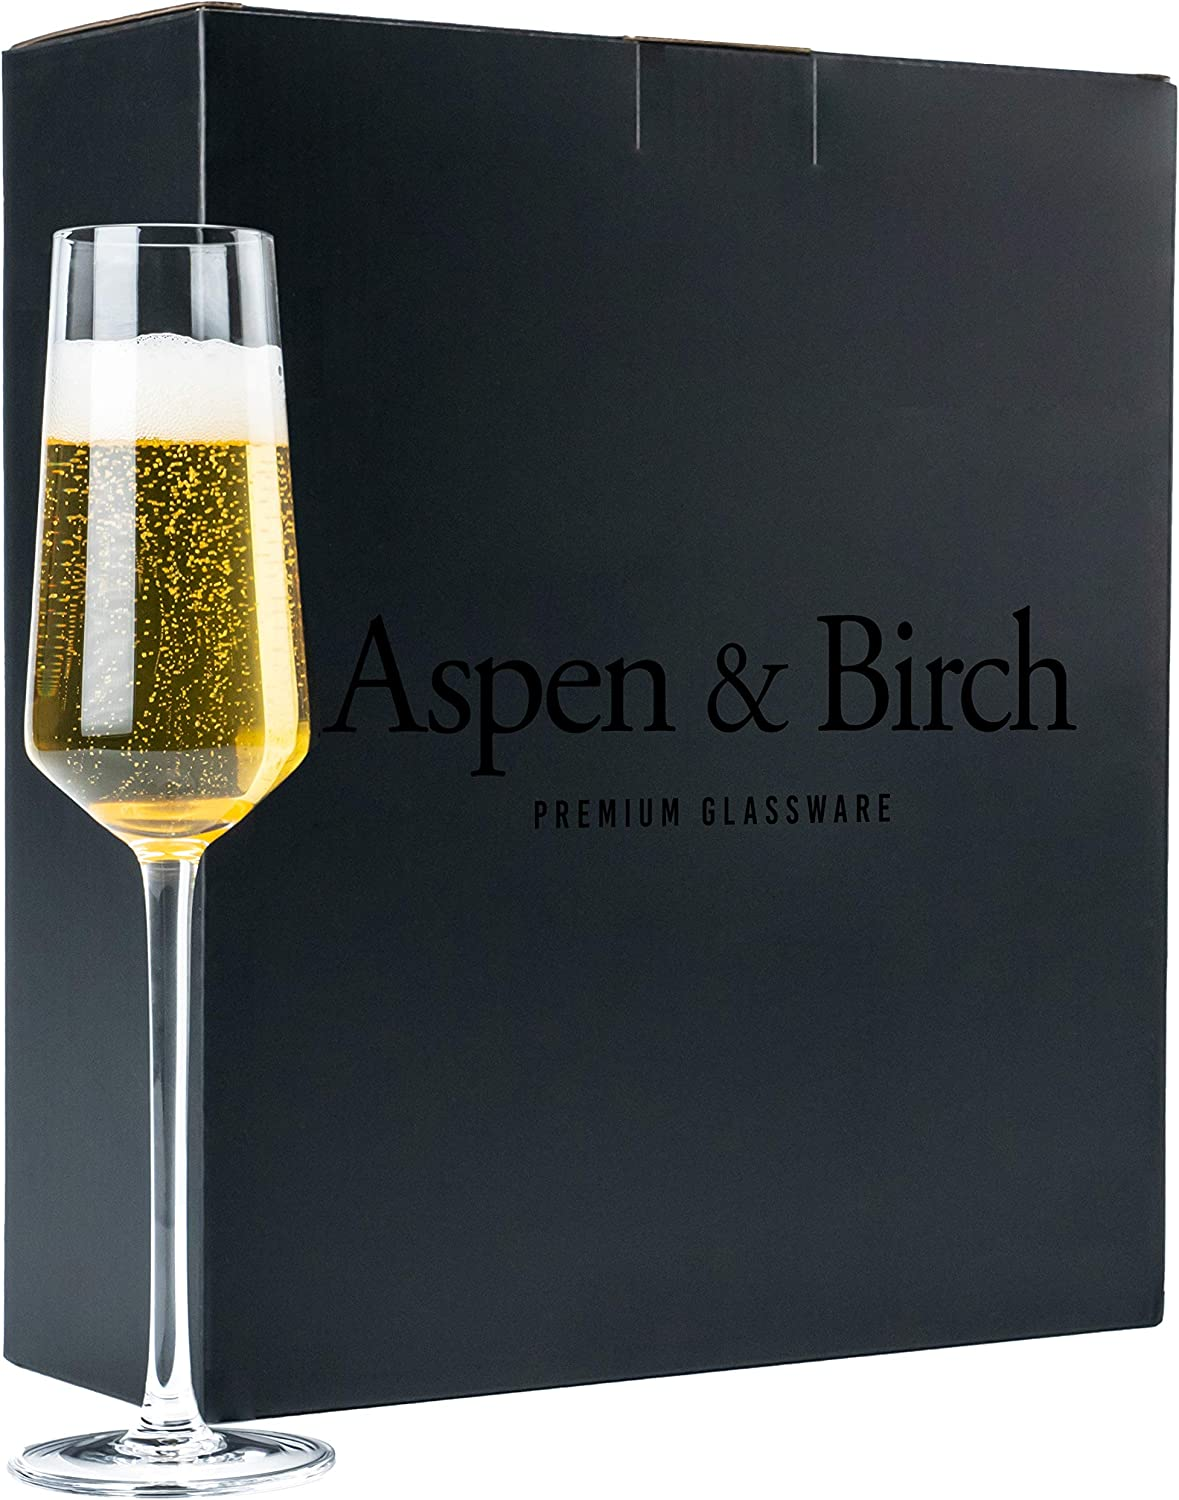 Aspen & Birch - Classic Champagne Flutes Set of 4 - Champagne Glasses - Mimosa Glasses, Premium Crystal Stemware, Clear, 6 oz, Hand Blown Glass Champagne Flutes - Hand Crafted by Artisans